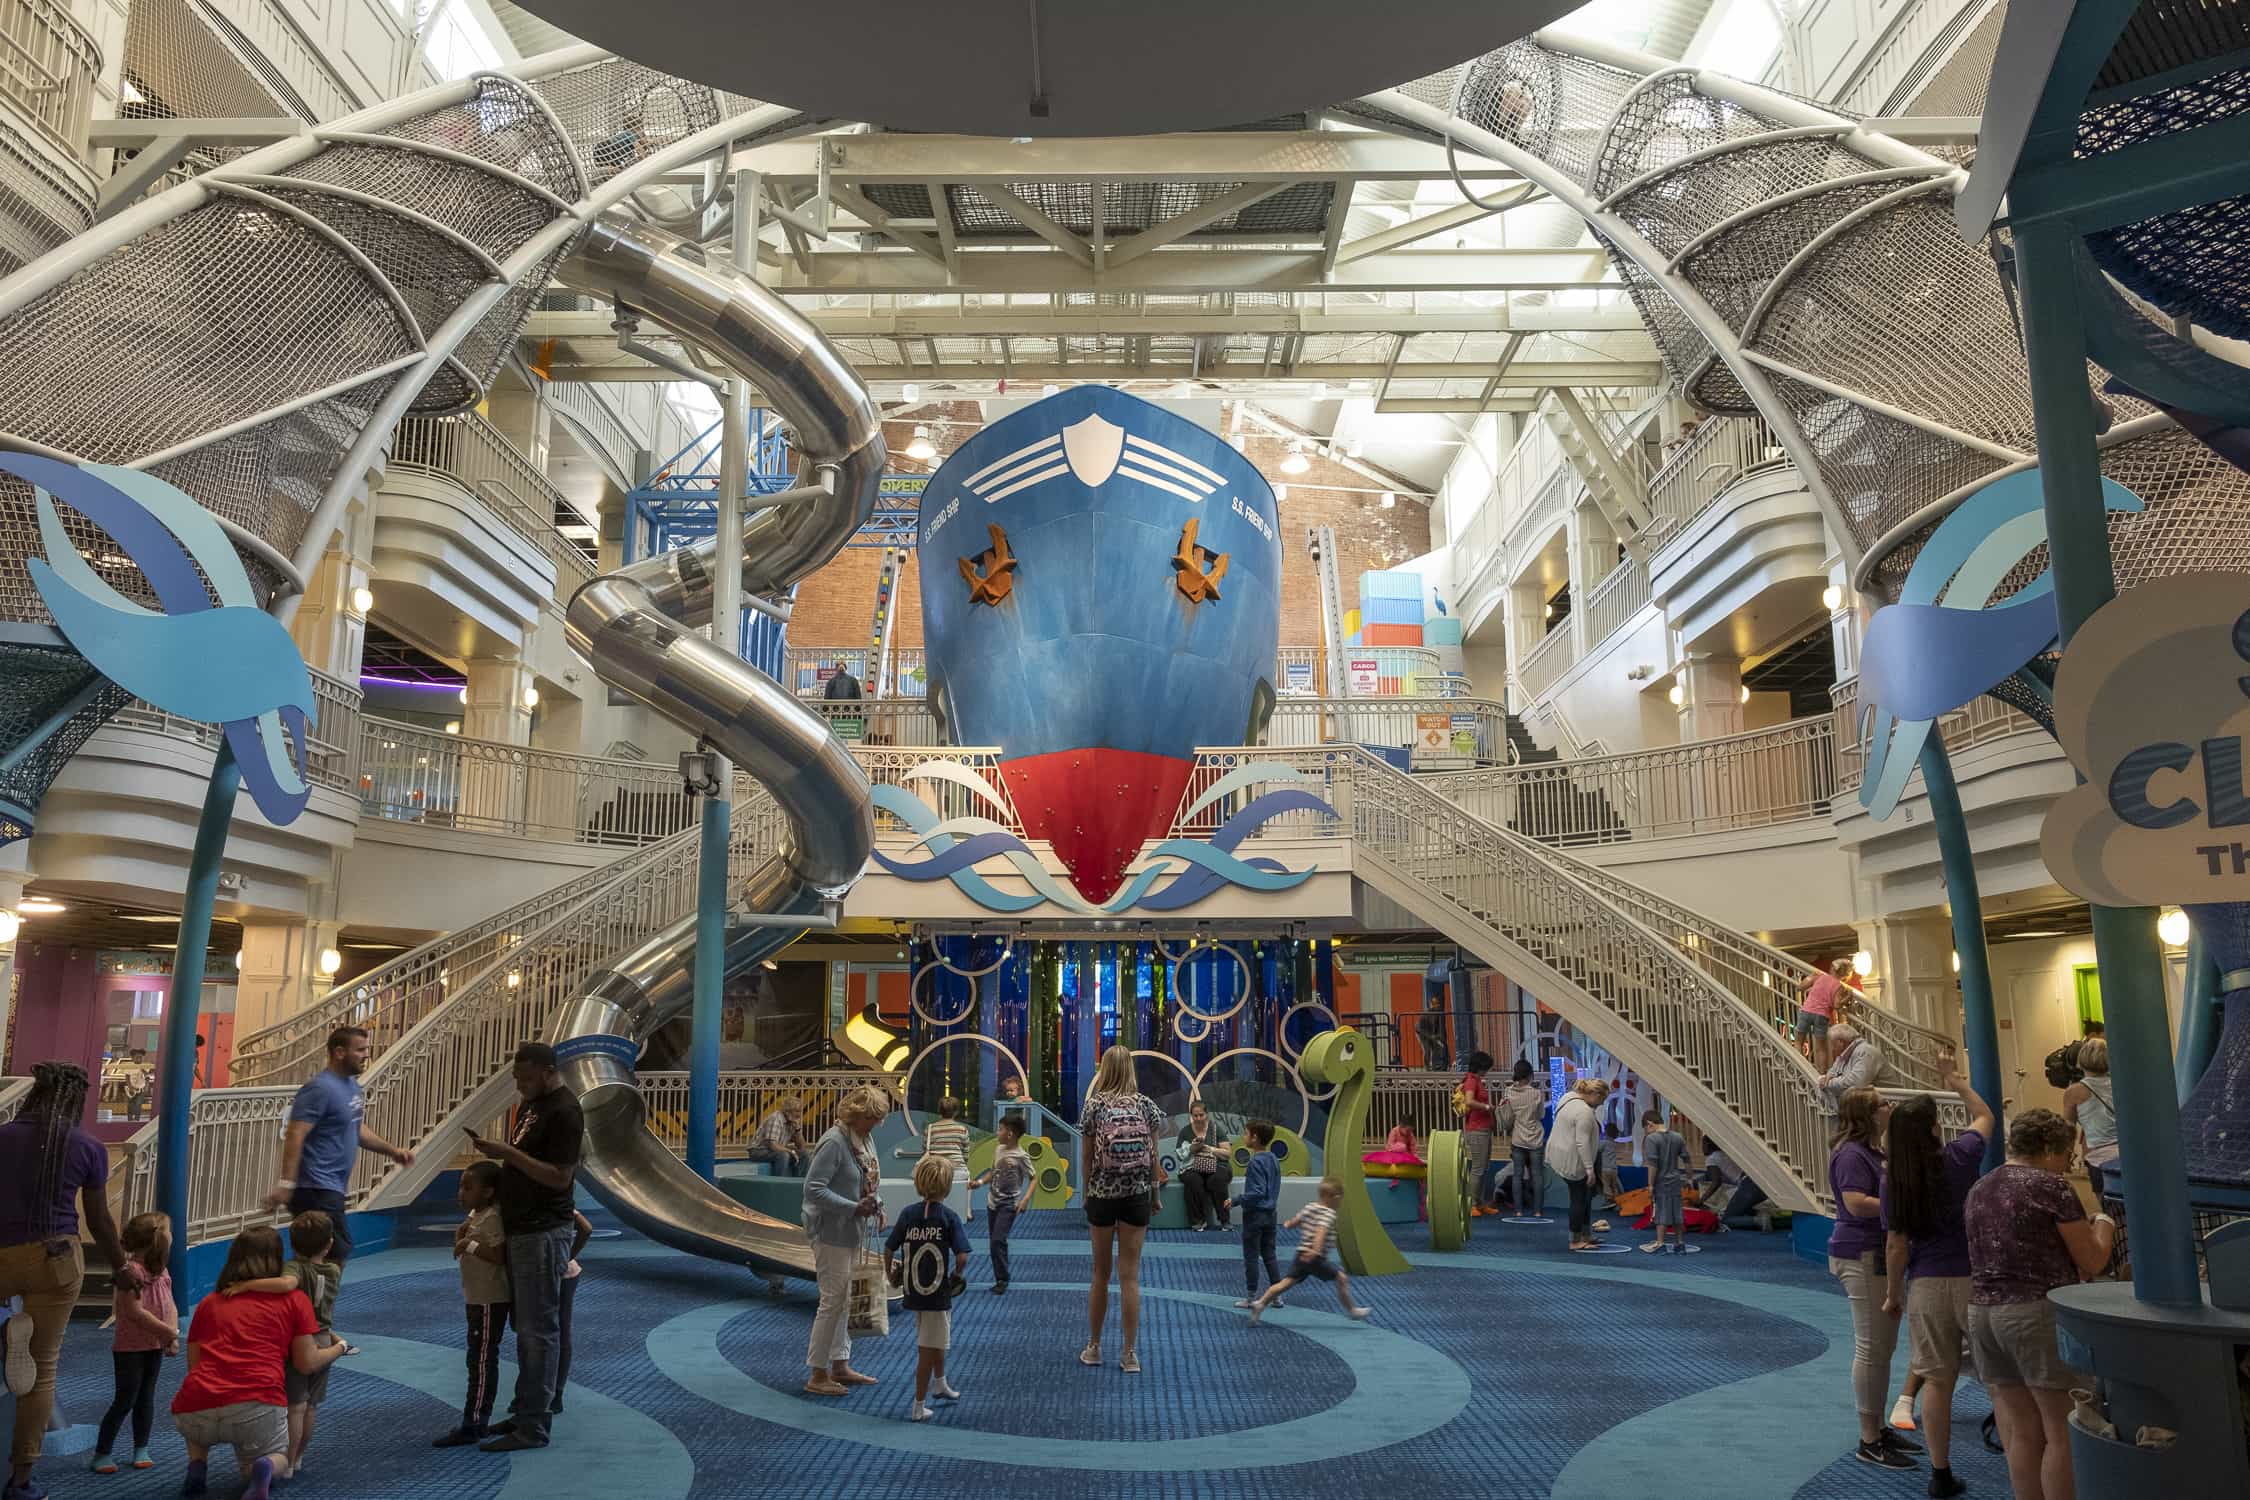 BIG New Exhibits at Port Discovery - The SkyClimber and The Port!